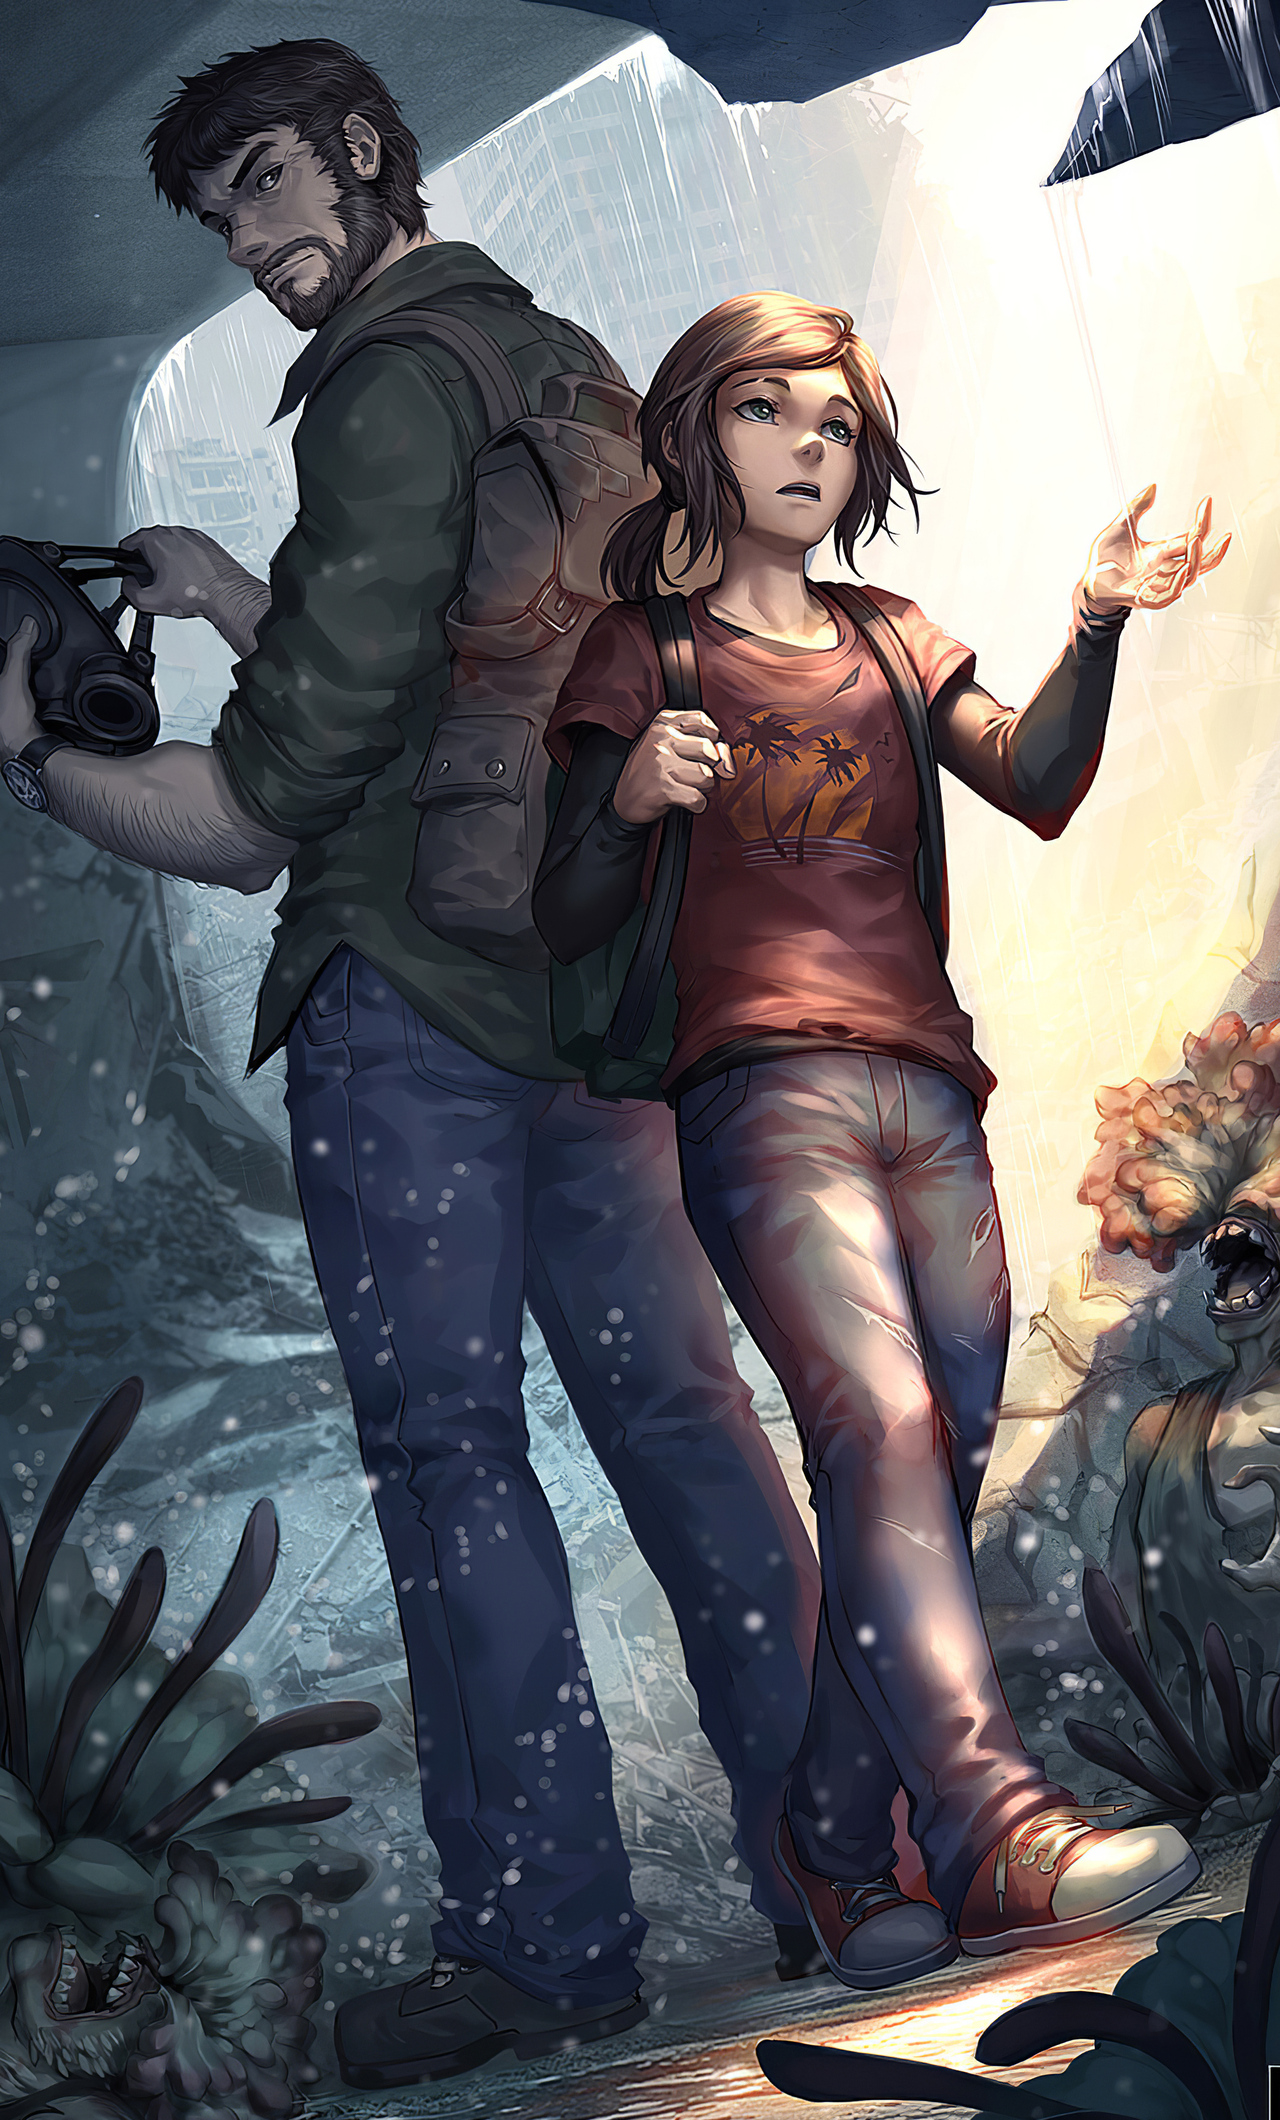 1280x2120 Joel And Ellie The Last Of Us Iphone 6 Hd 4k Wallpapers